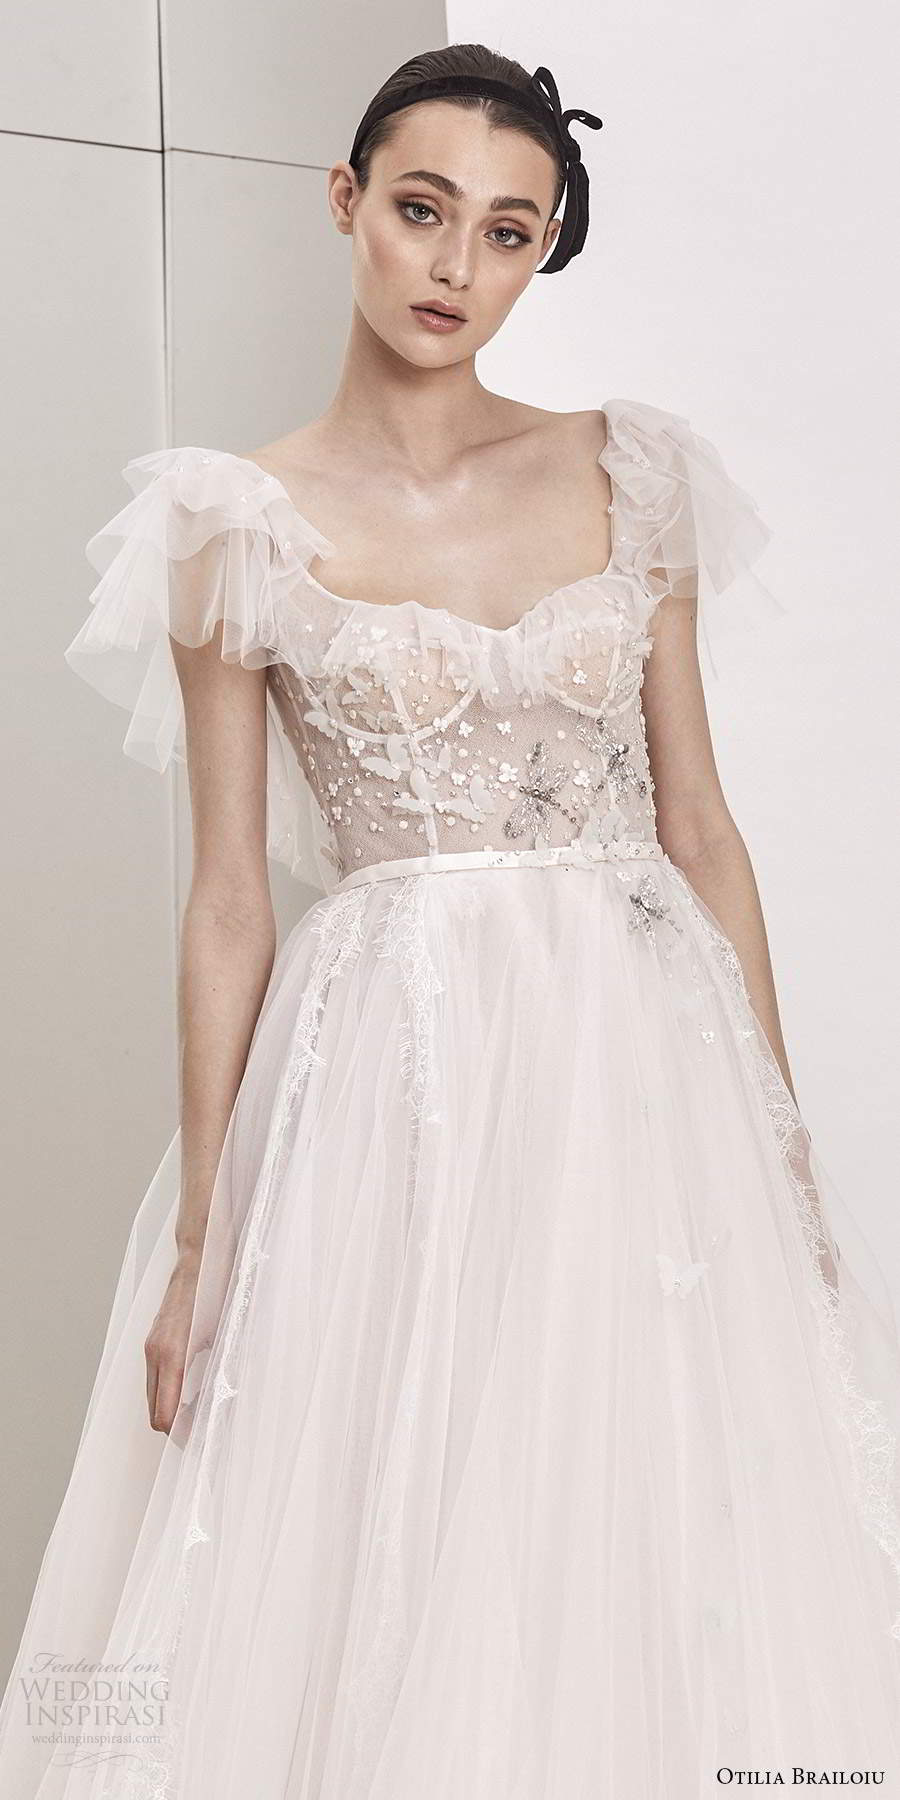 otilia brailoiu spring 2020 bridal flutter sleeves semi sweetheart neckline embellished sheer bodice a line ball gown wedding dress chapel train (17) zv